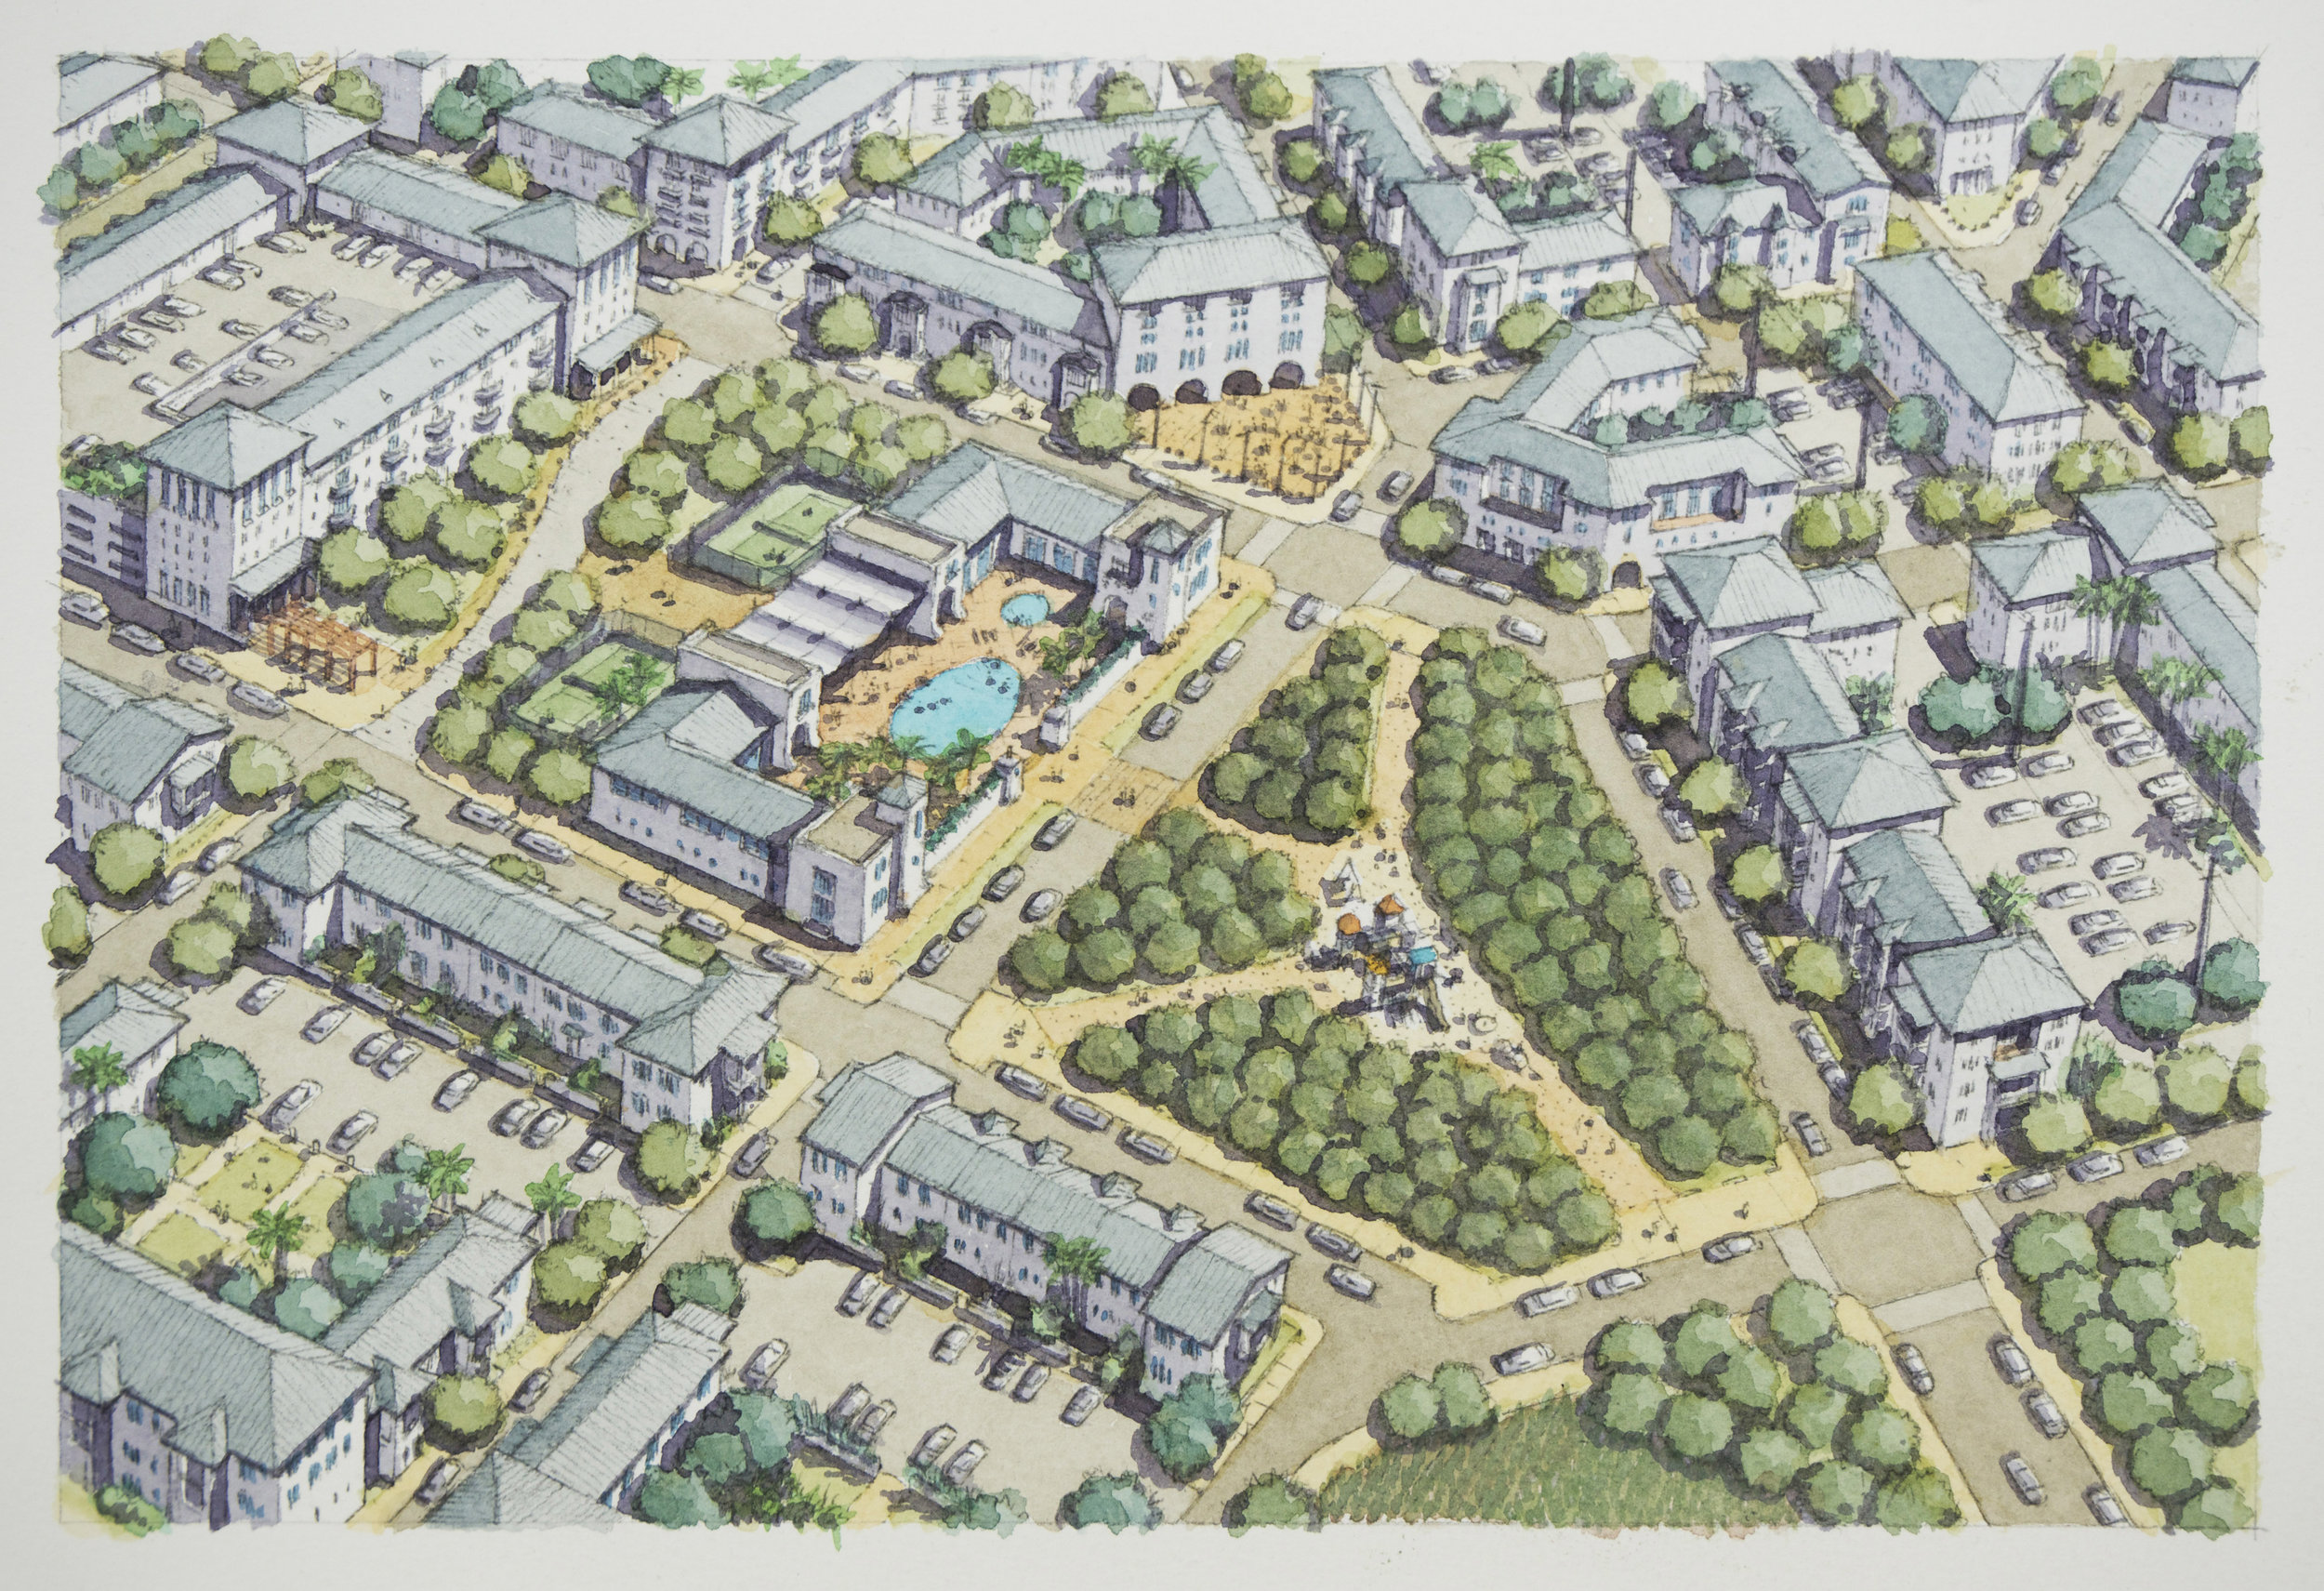 Aerial View of Neighborhood Center and Clubhouse (rendered by Chris Ritter and Eusebio Azcue)